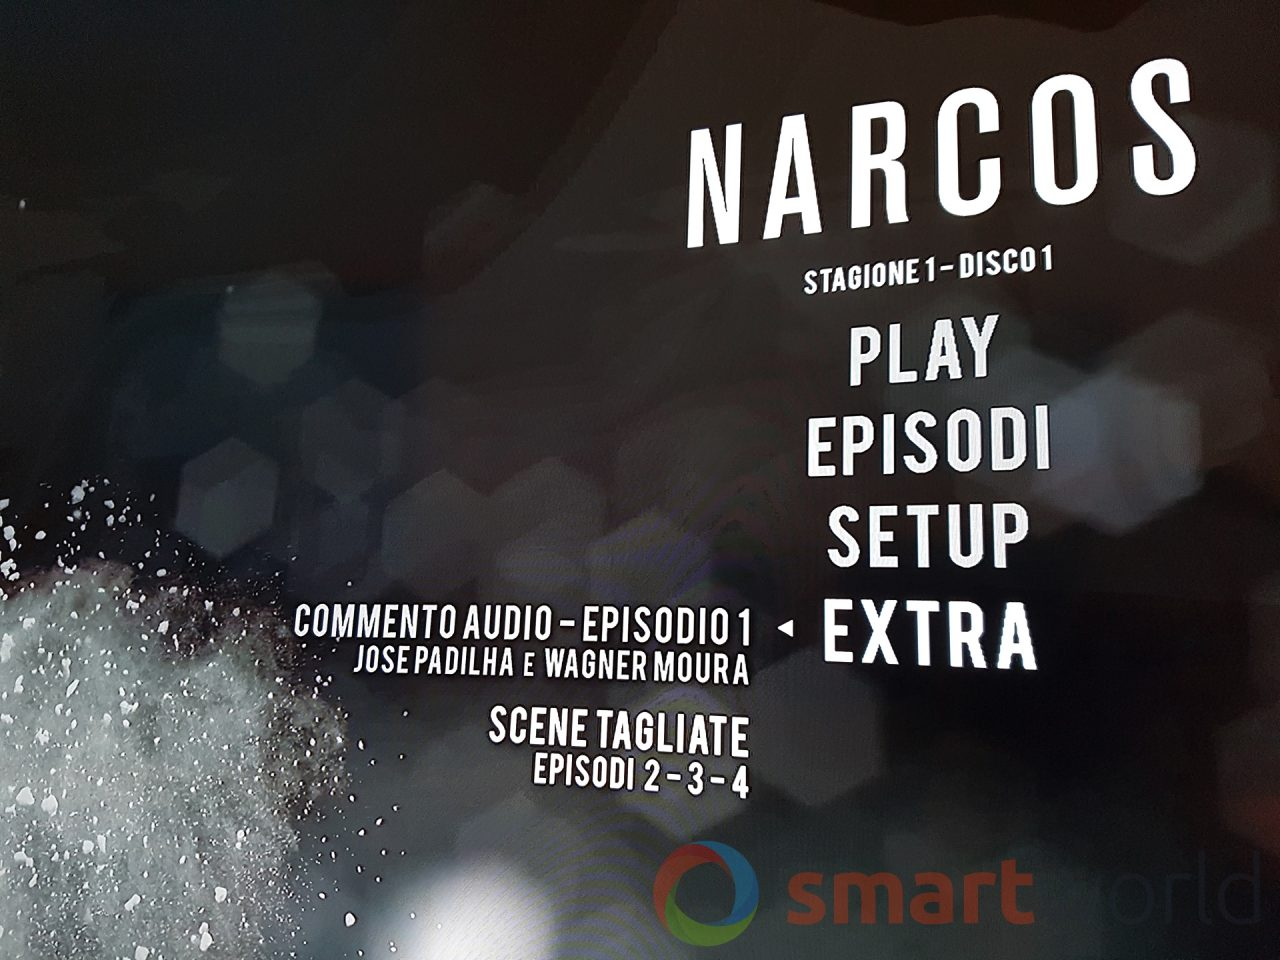 narcos-blu-ray-qualita-video-5